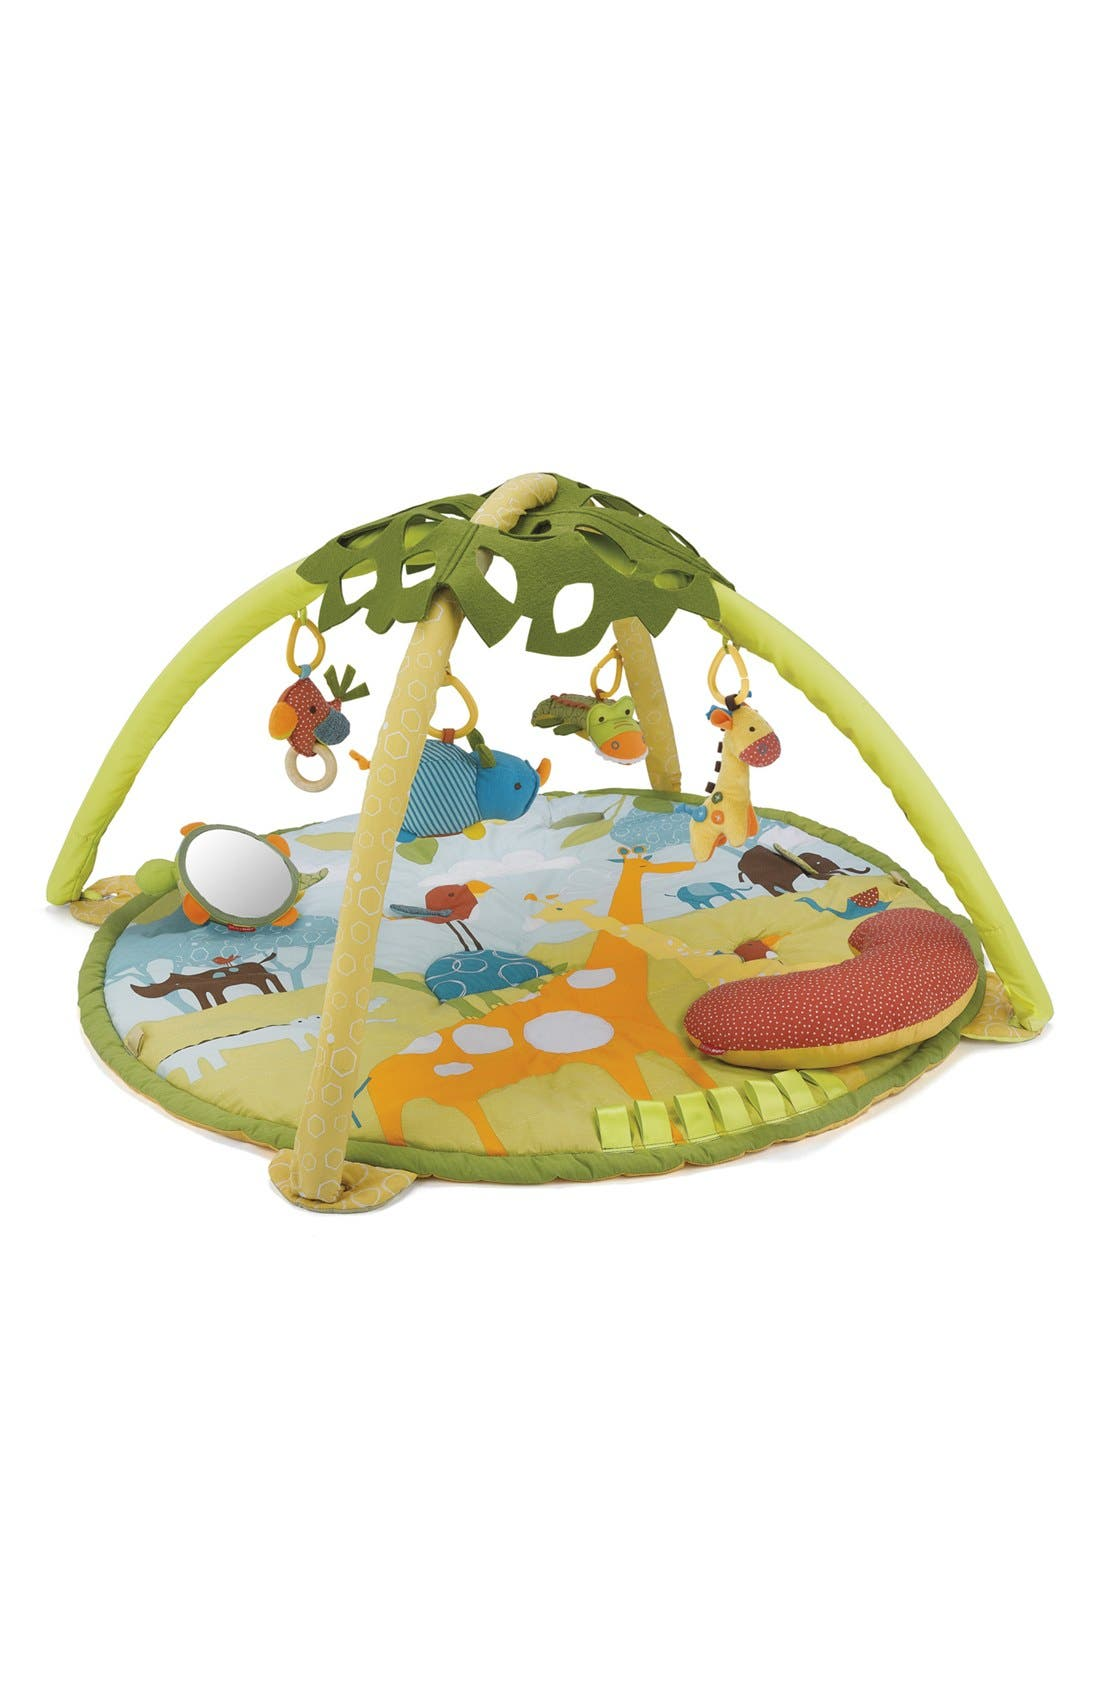 'Giraffe Safari' Activity Gym, Main, color, 300